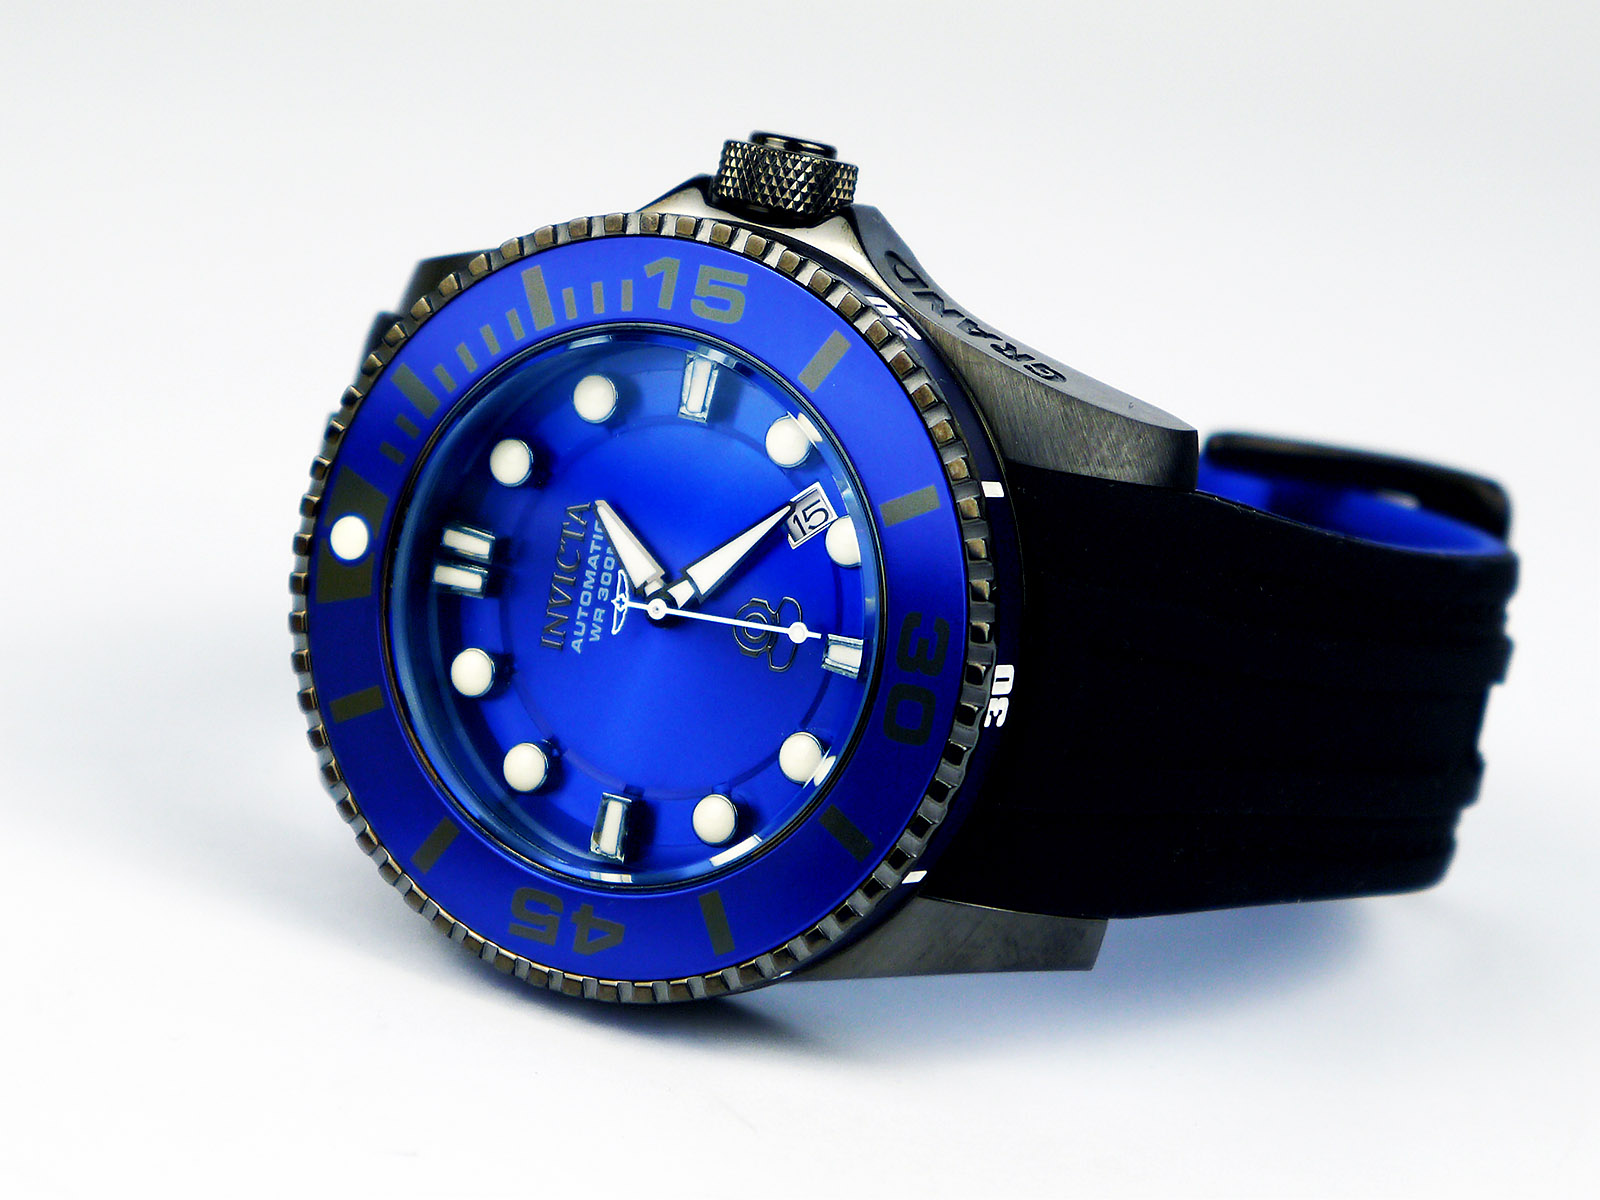 computer mares watches puck pro dive scuba diving s of watch p ebay picture